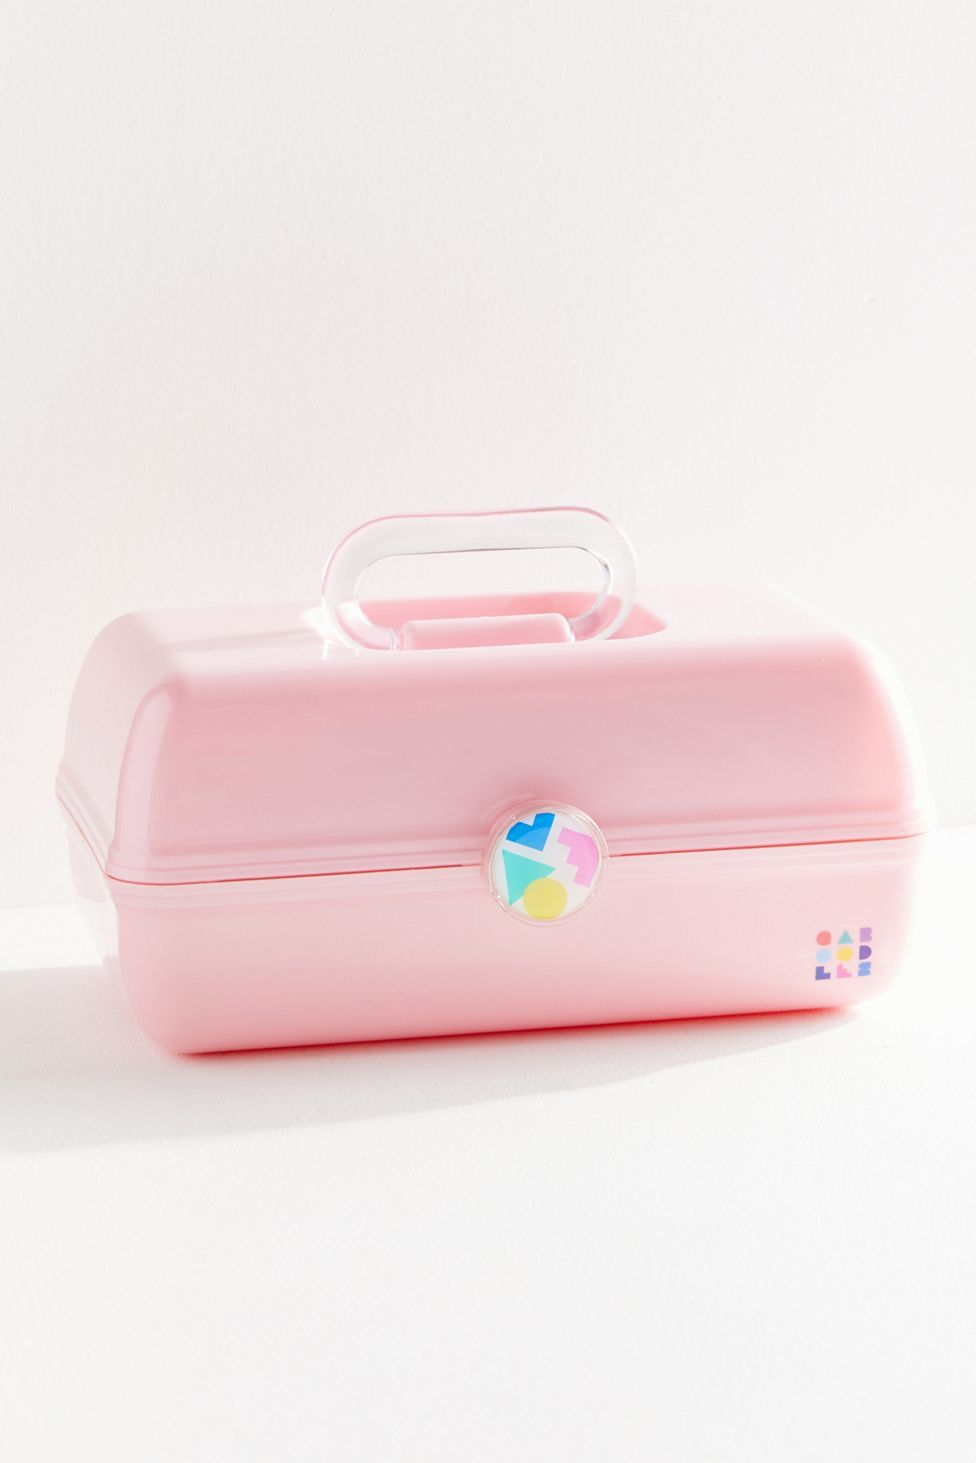 Caboodles On The Go Girl Makeup Case In 2020 Caboodles Makeup Cases Caboodles Makeup Case